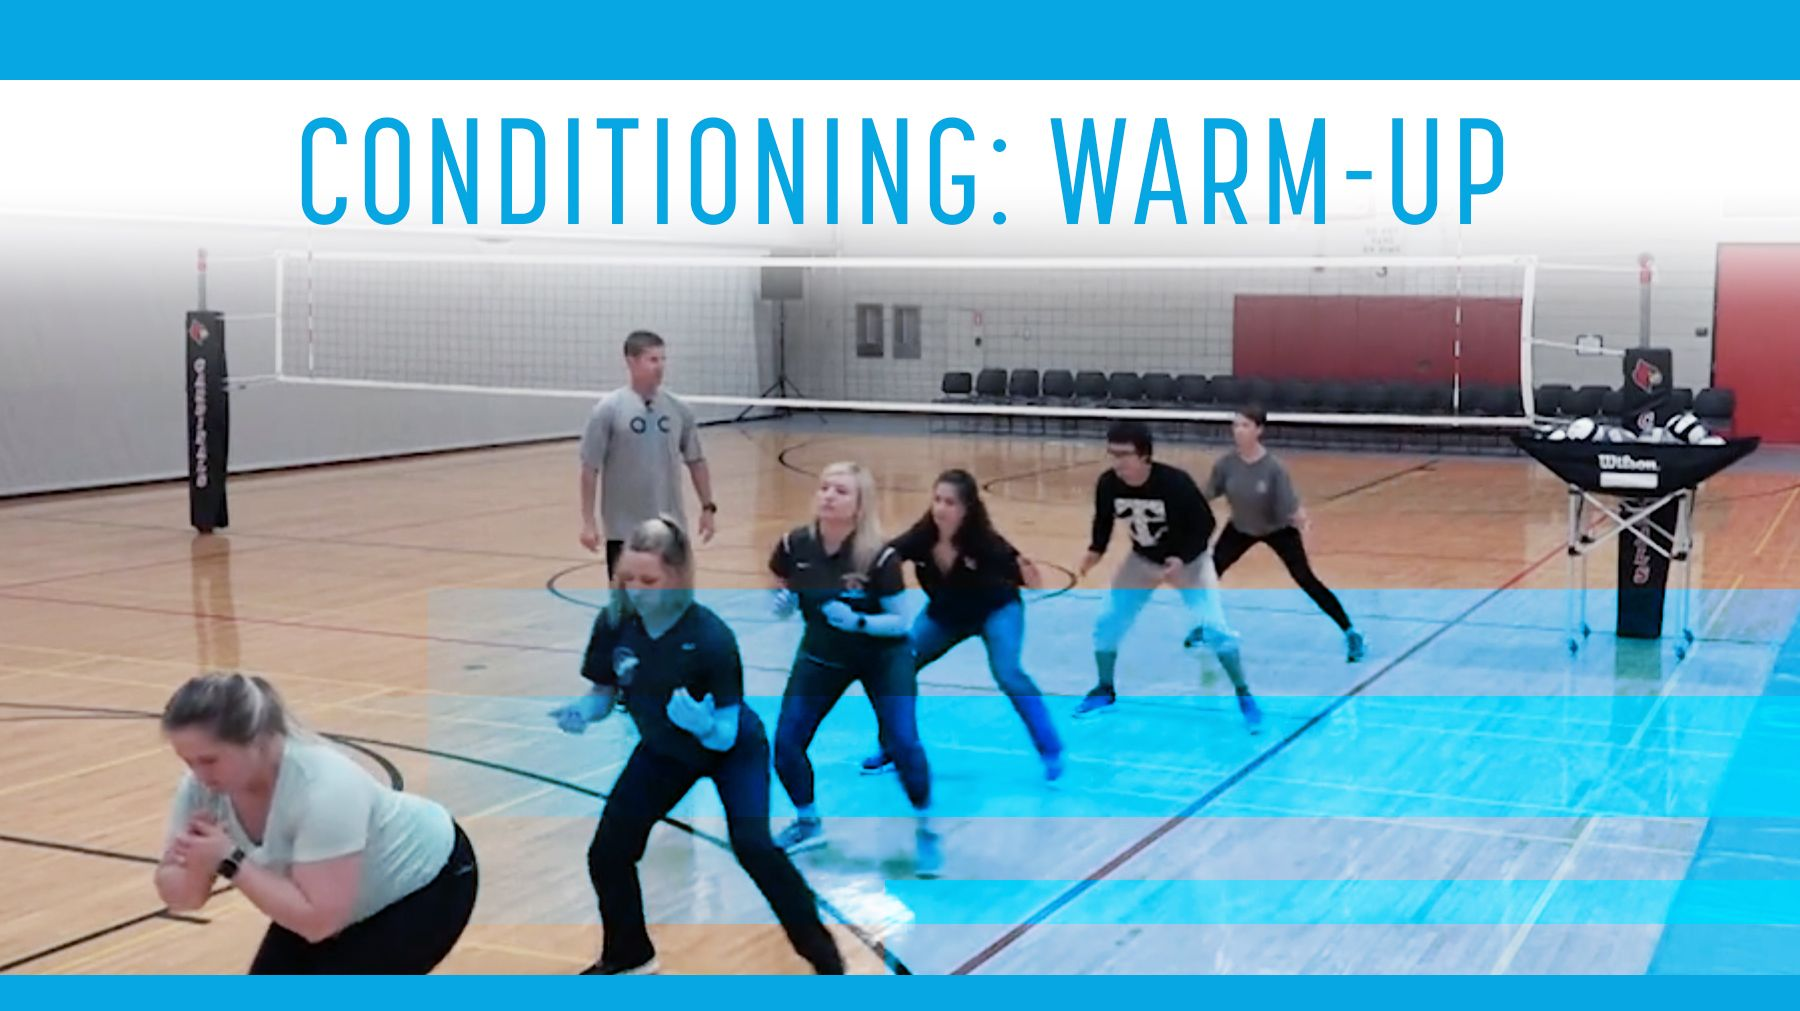 Conditioning Why Warming Up Your Athletes Matters The Art Of Coaching Volleyball Volleyball Training Volleyball Workouts Volleyball Skills